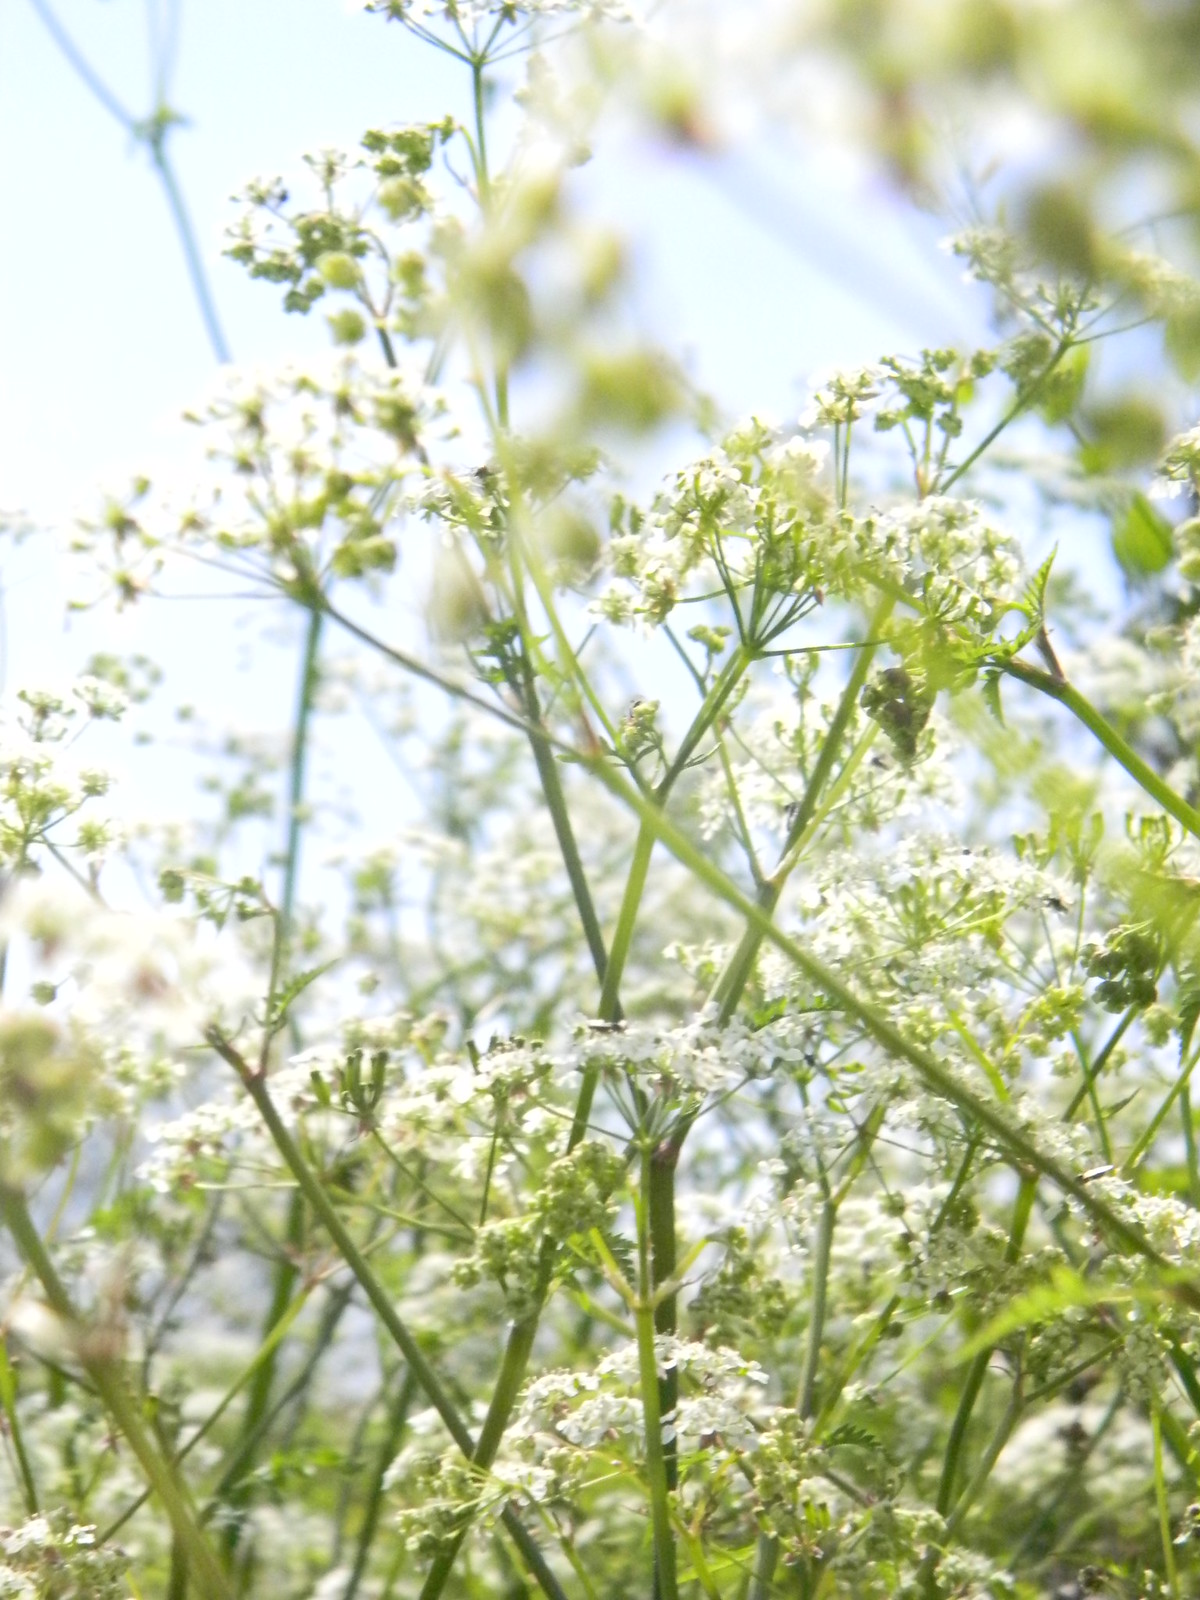 Cow parsley Berwick to Birling Gap